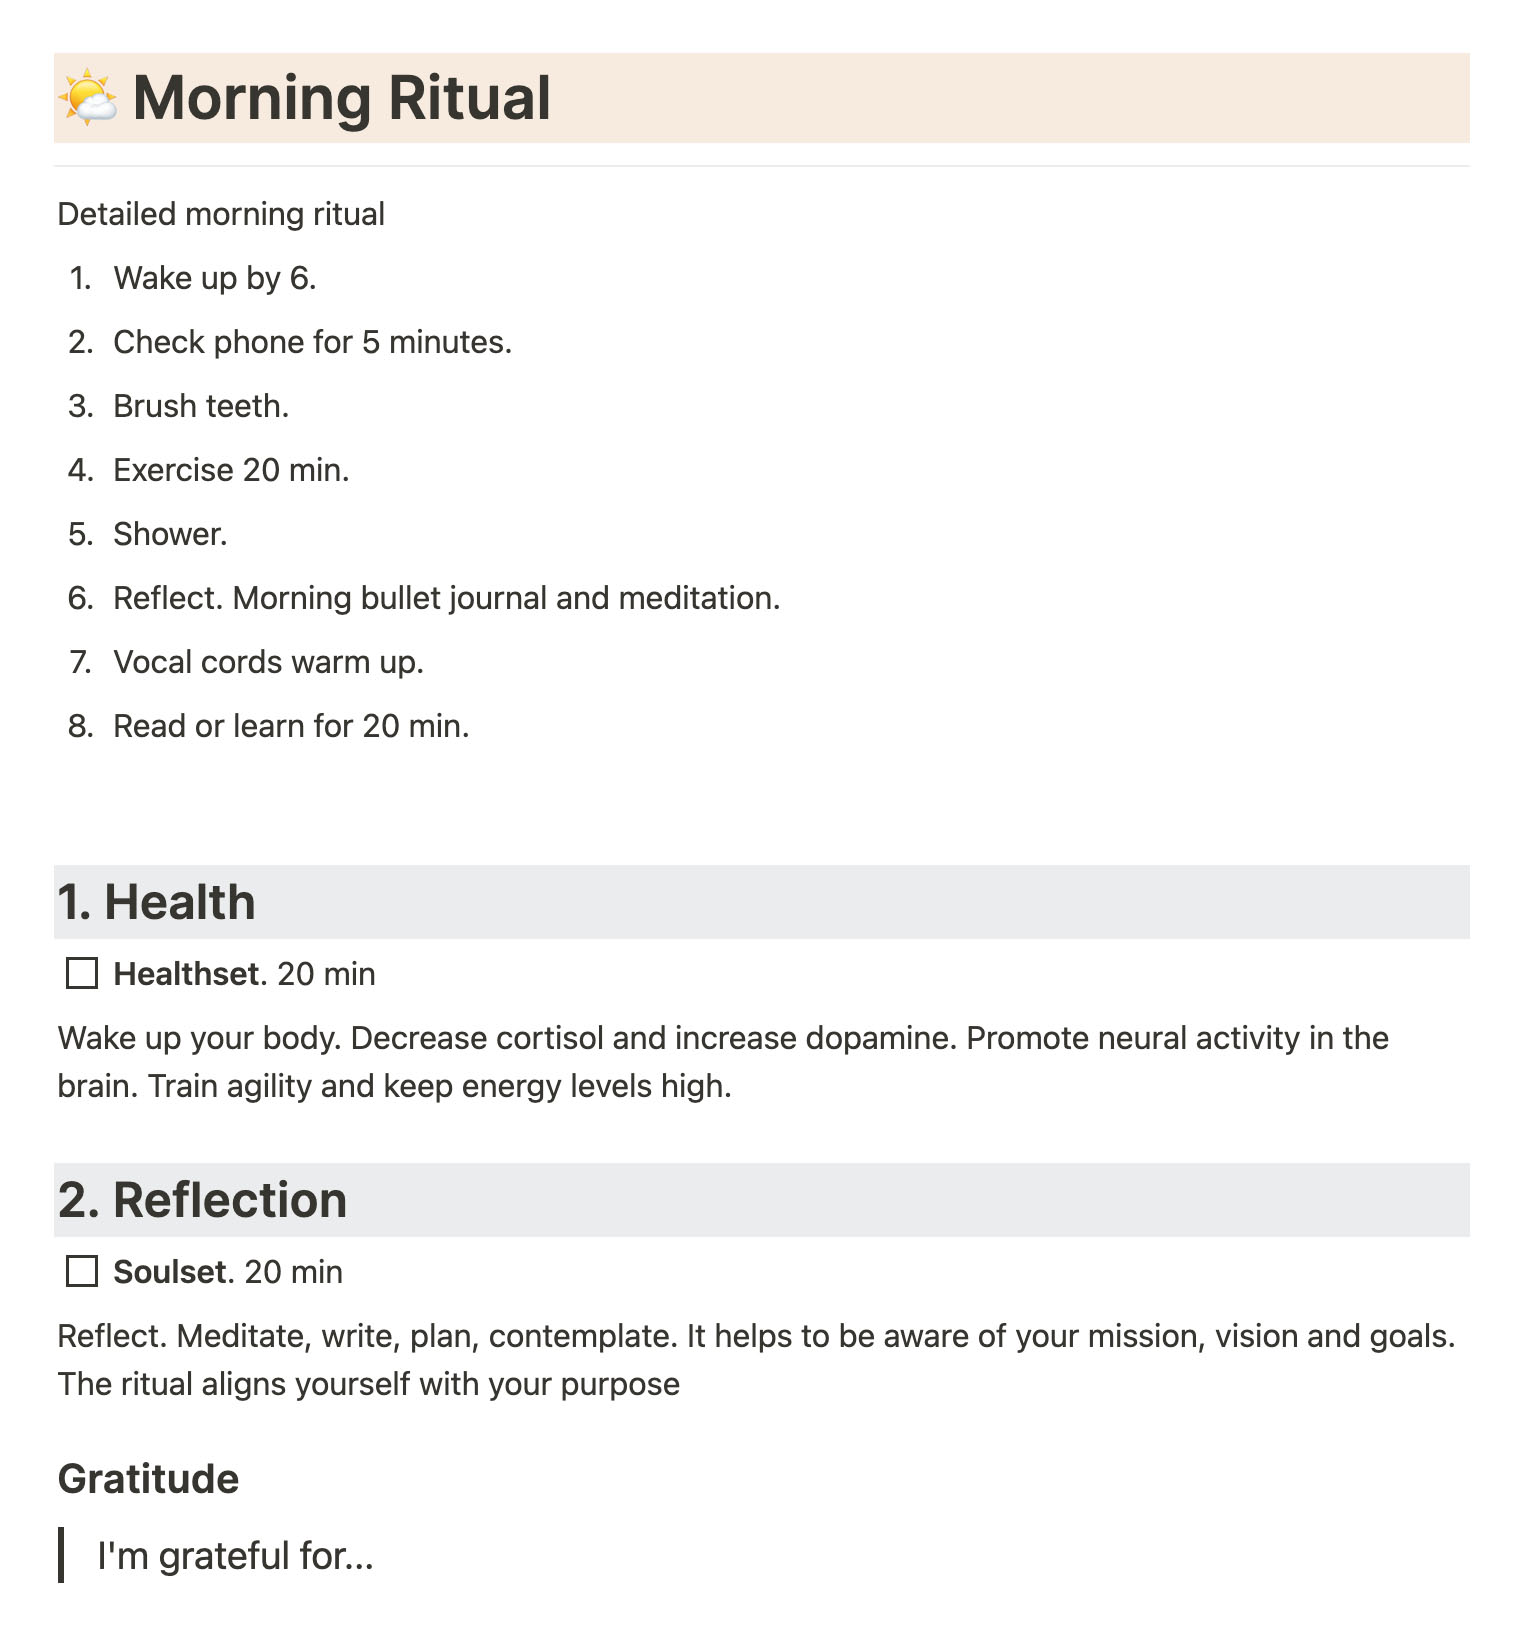 My morning ritual template in Notion